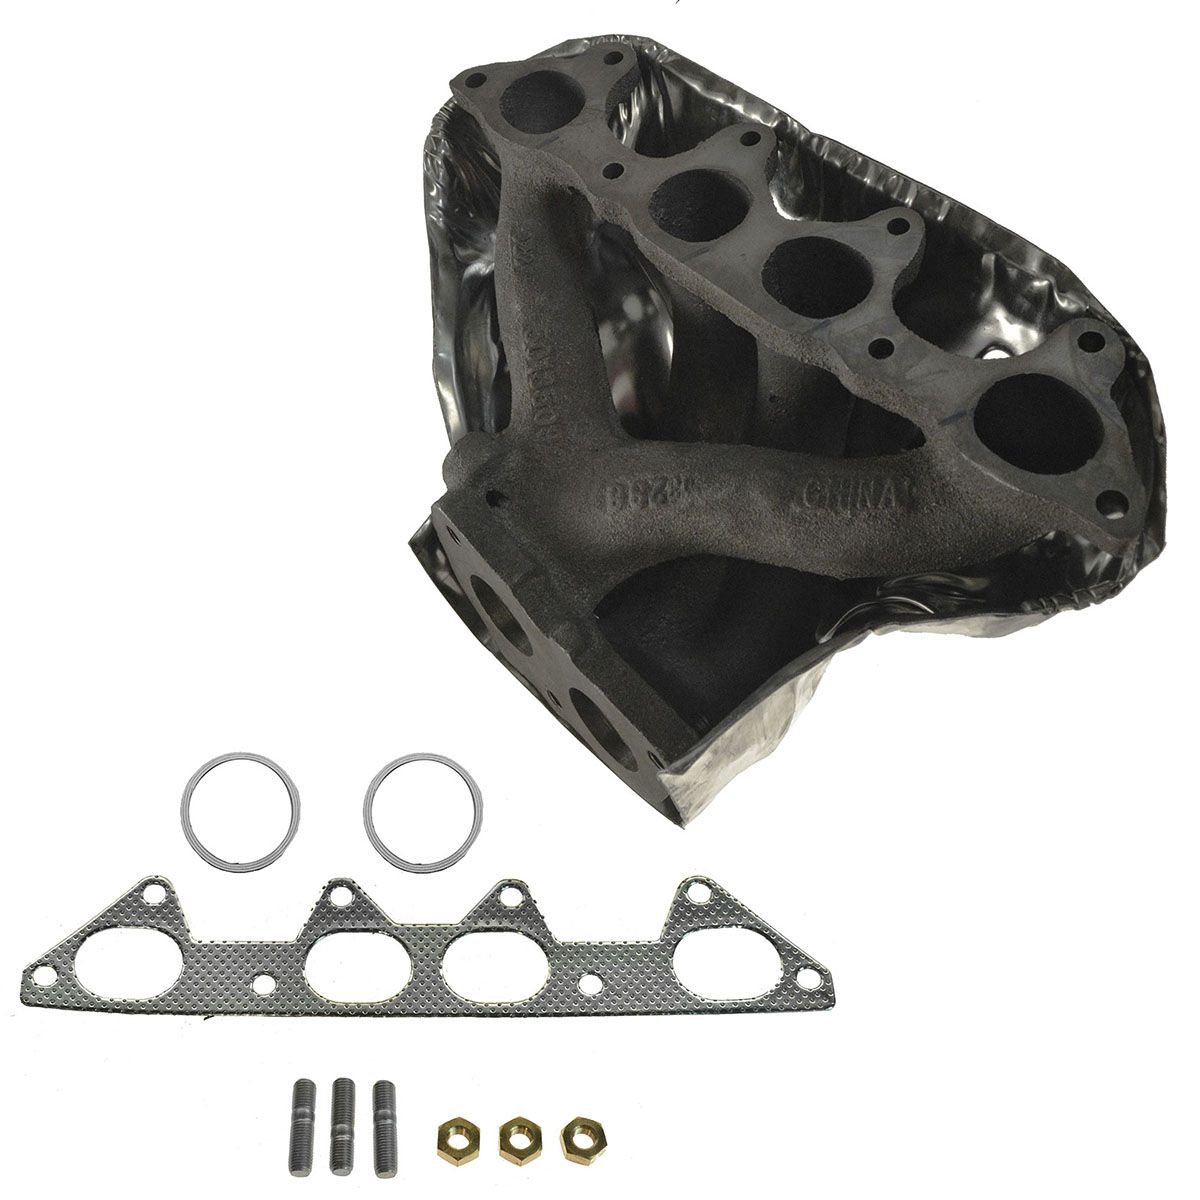 Exhaust Manifold 4 Cyl w/ Heat Shield for Honda Accord Odyssey Acura CL  Oasis